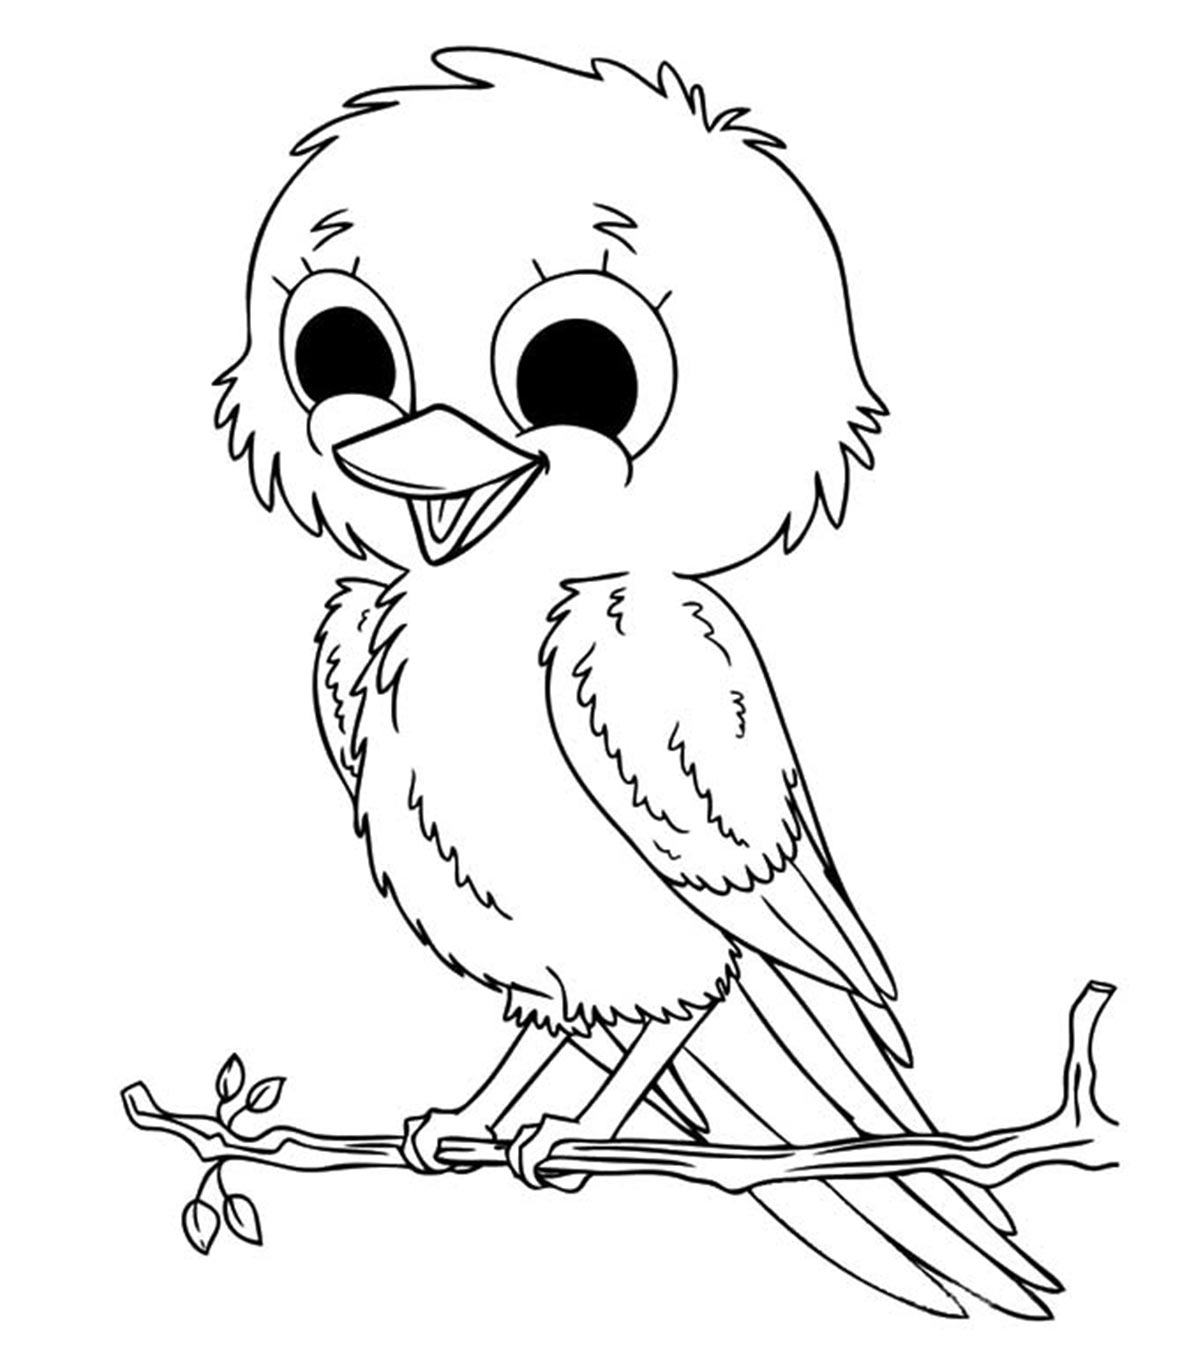 top 20 free printable bird coloring pages online free printable bird coloring pages